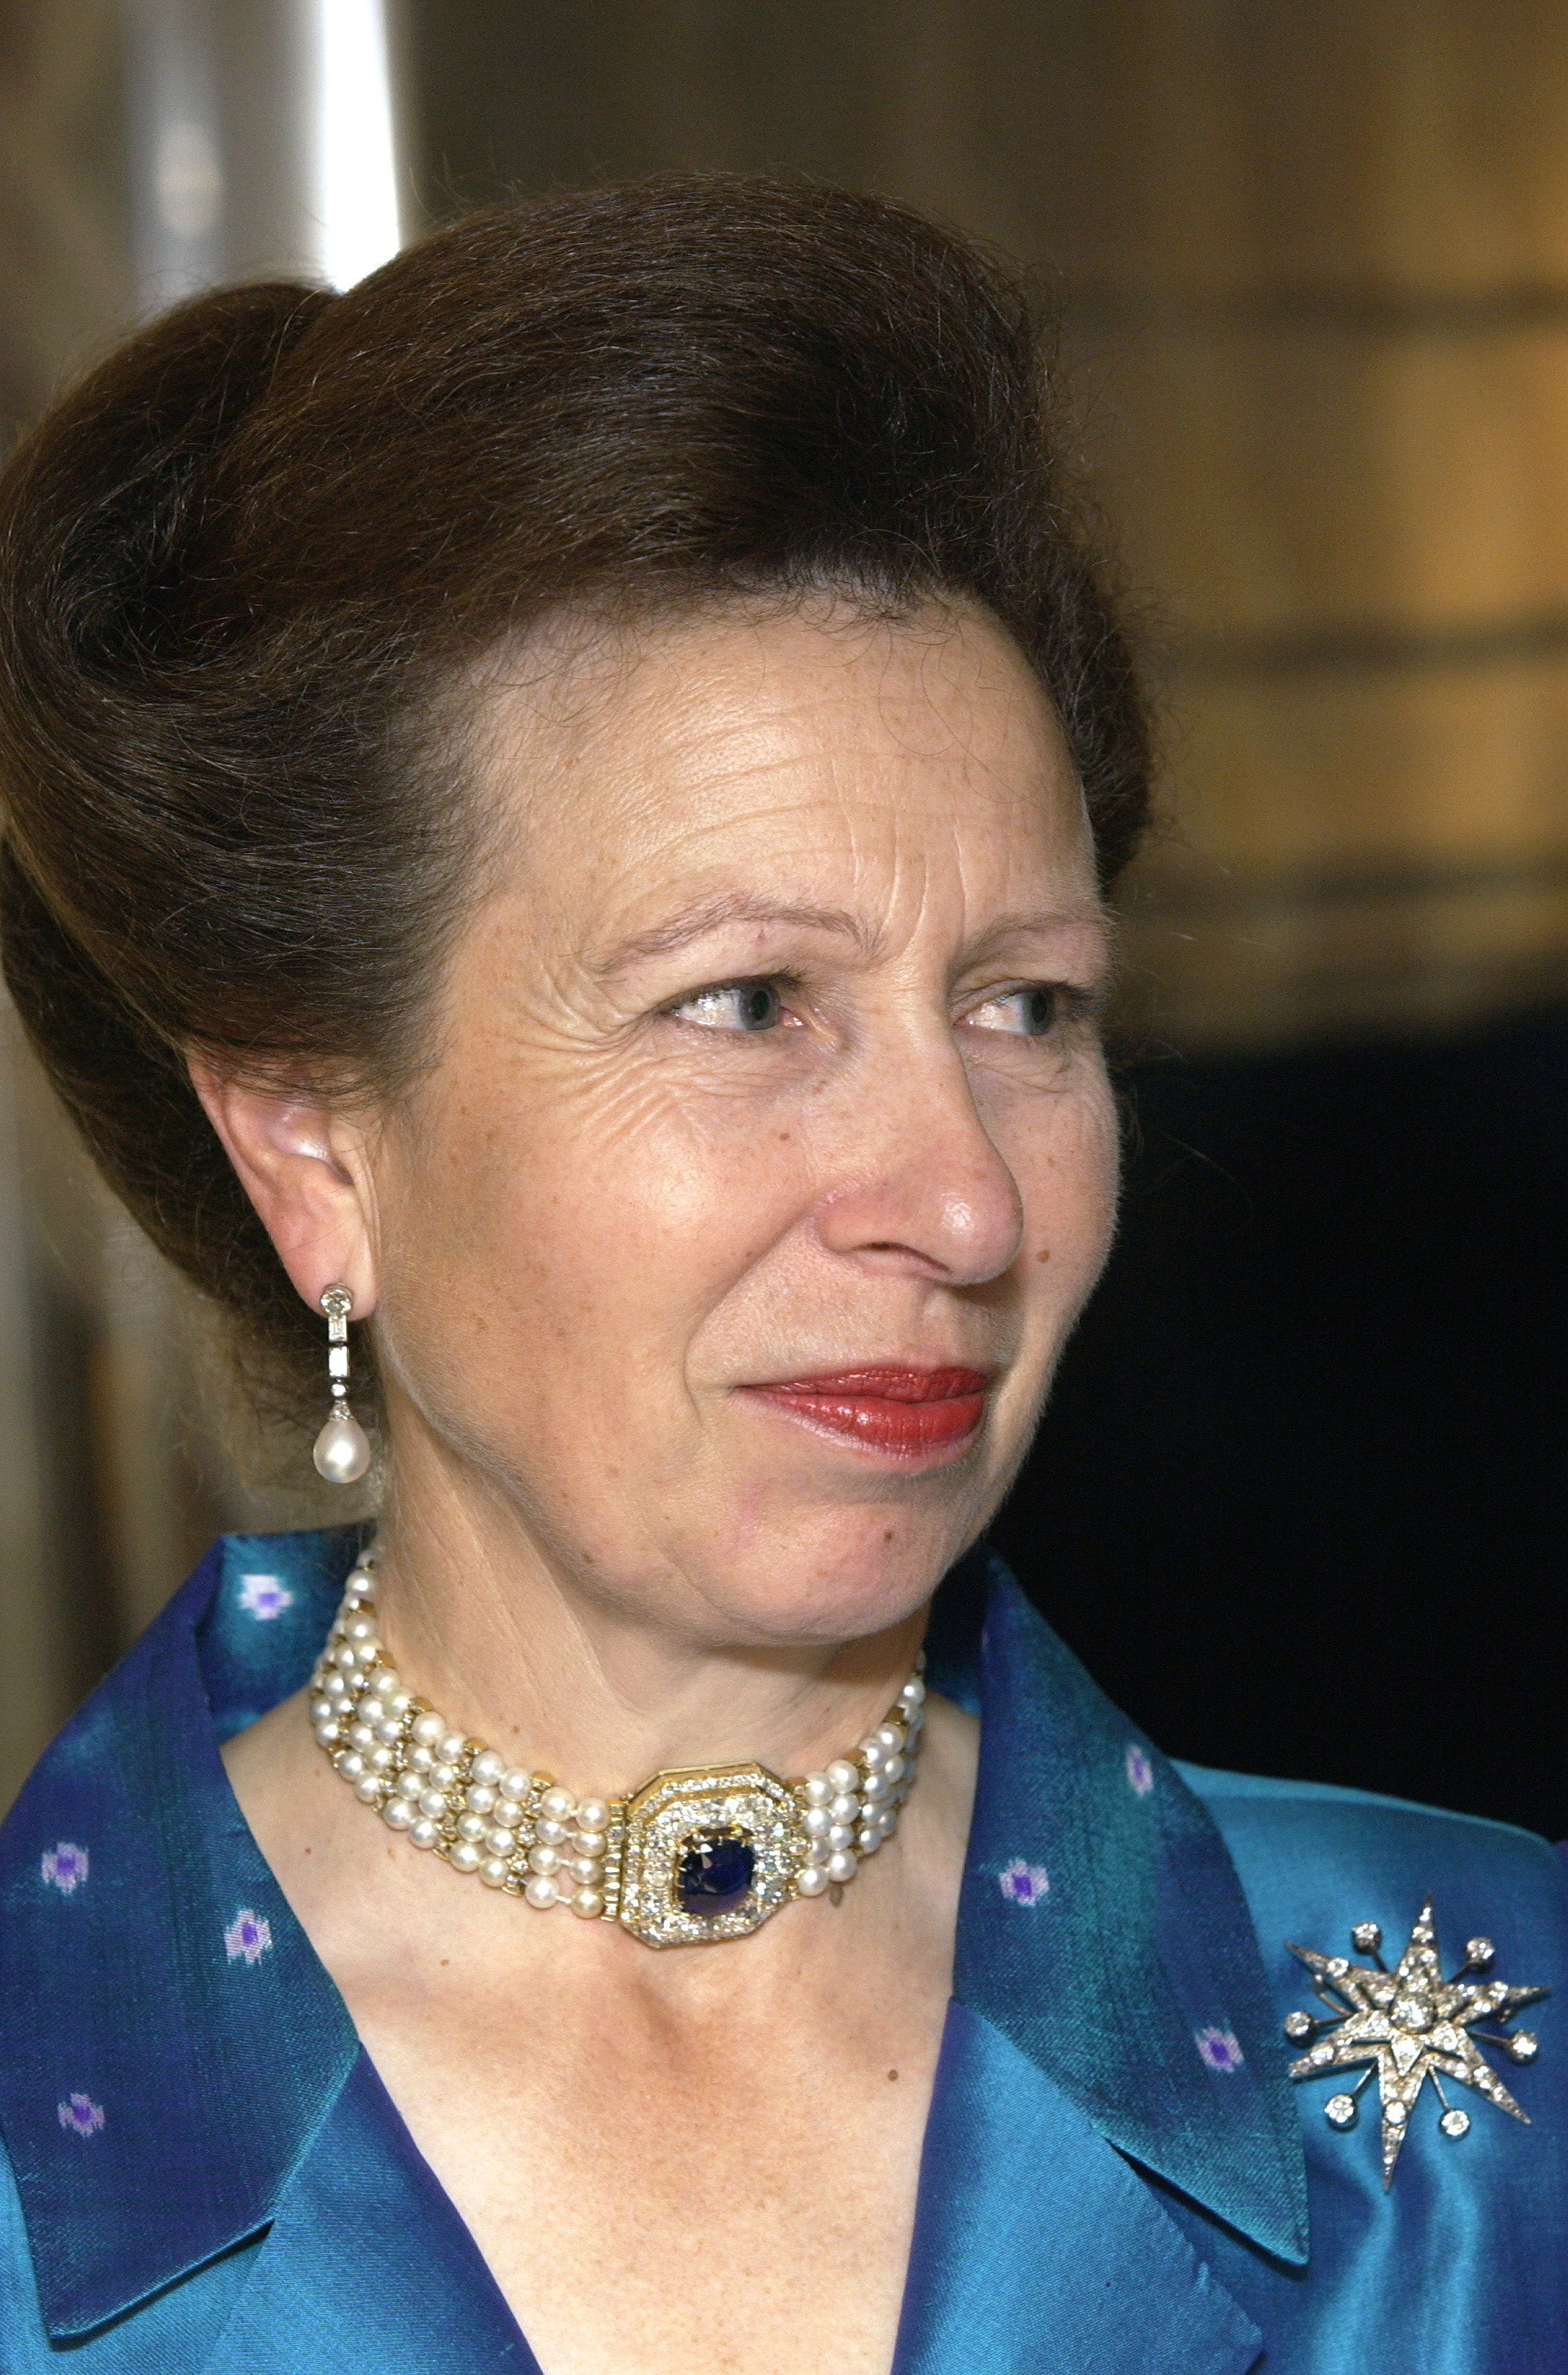 Anne, the Princess Royal, wearing the choker that supposedly came from the Marie Feodorovna's collection.